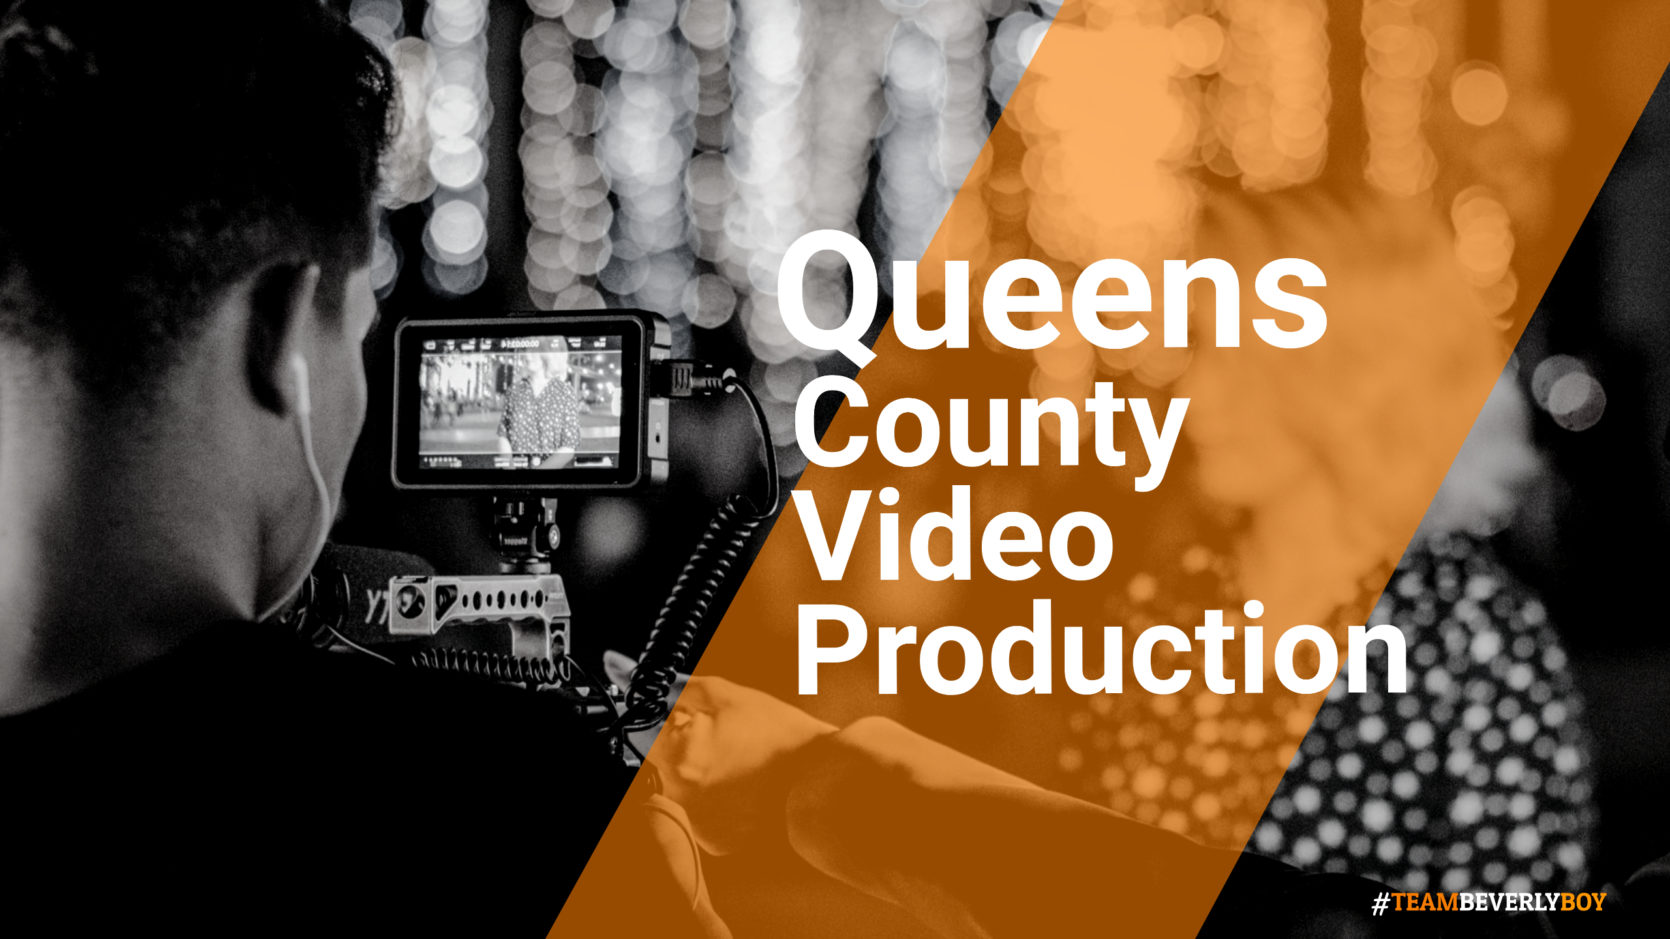 Queens County video production